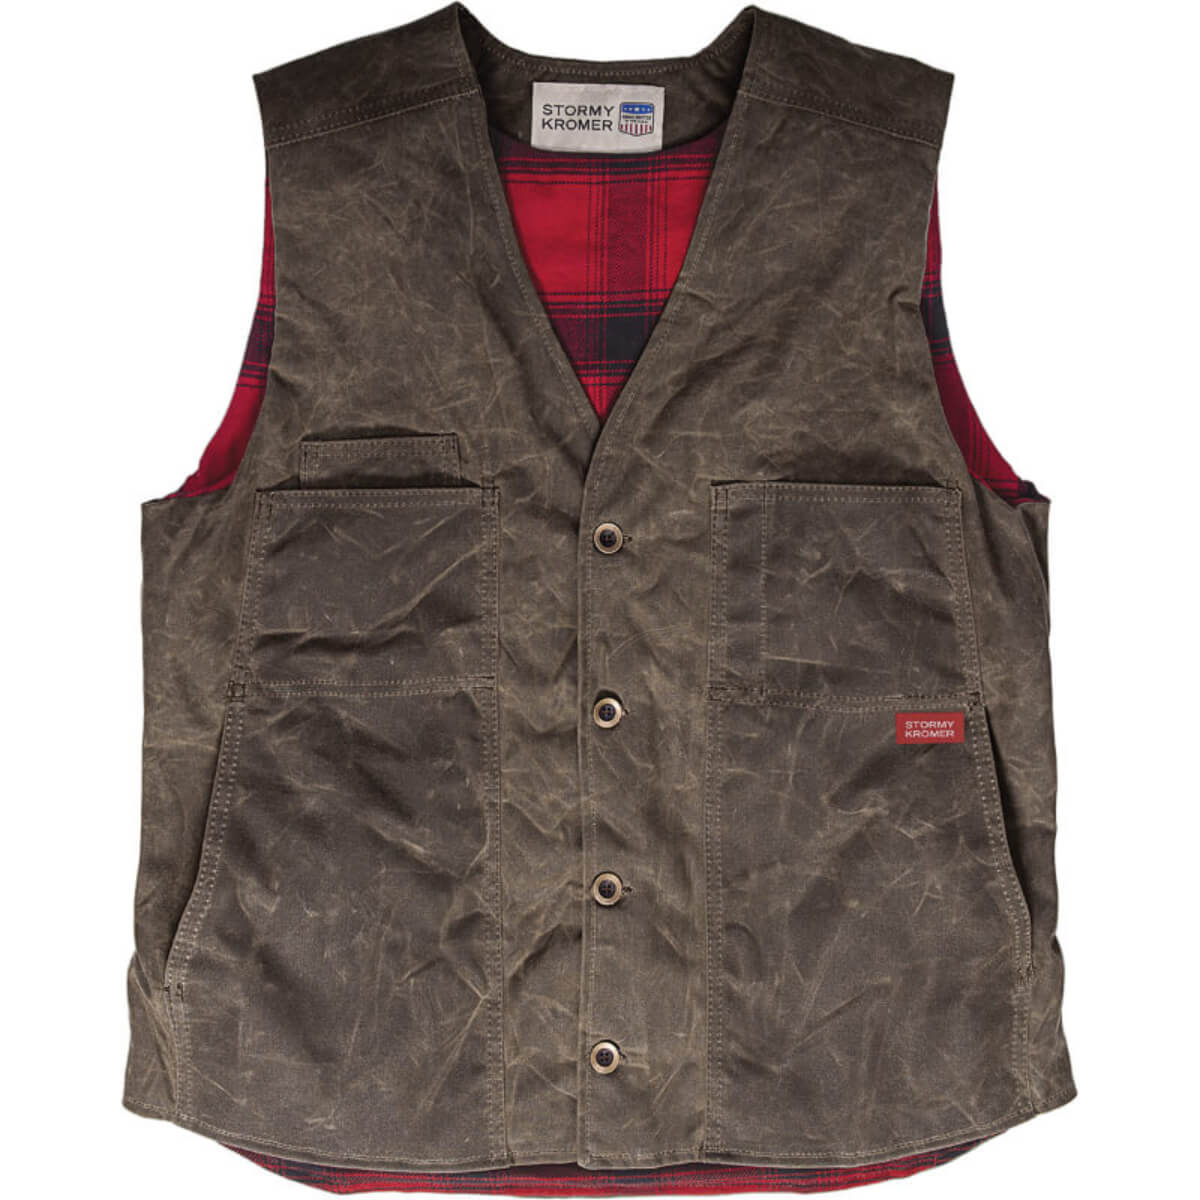 The Waxed Cotton Vest